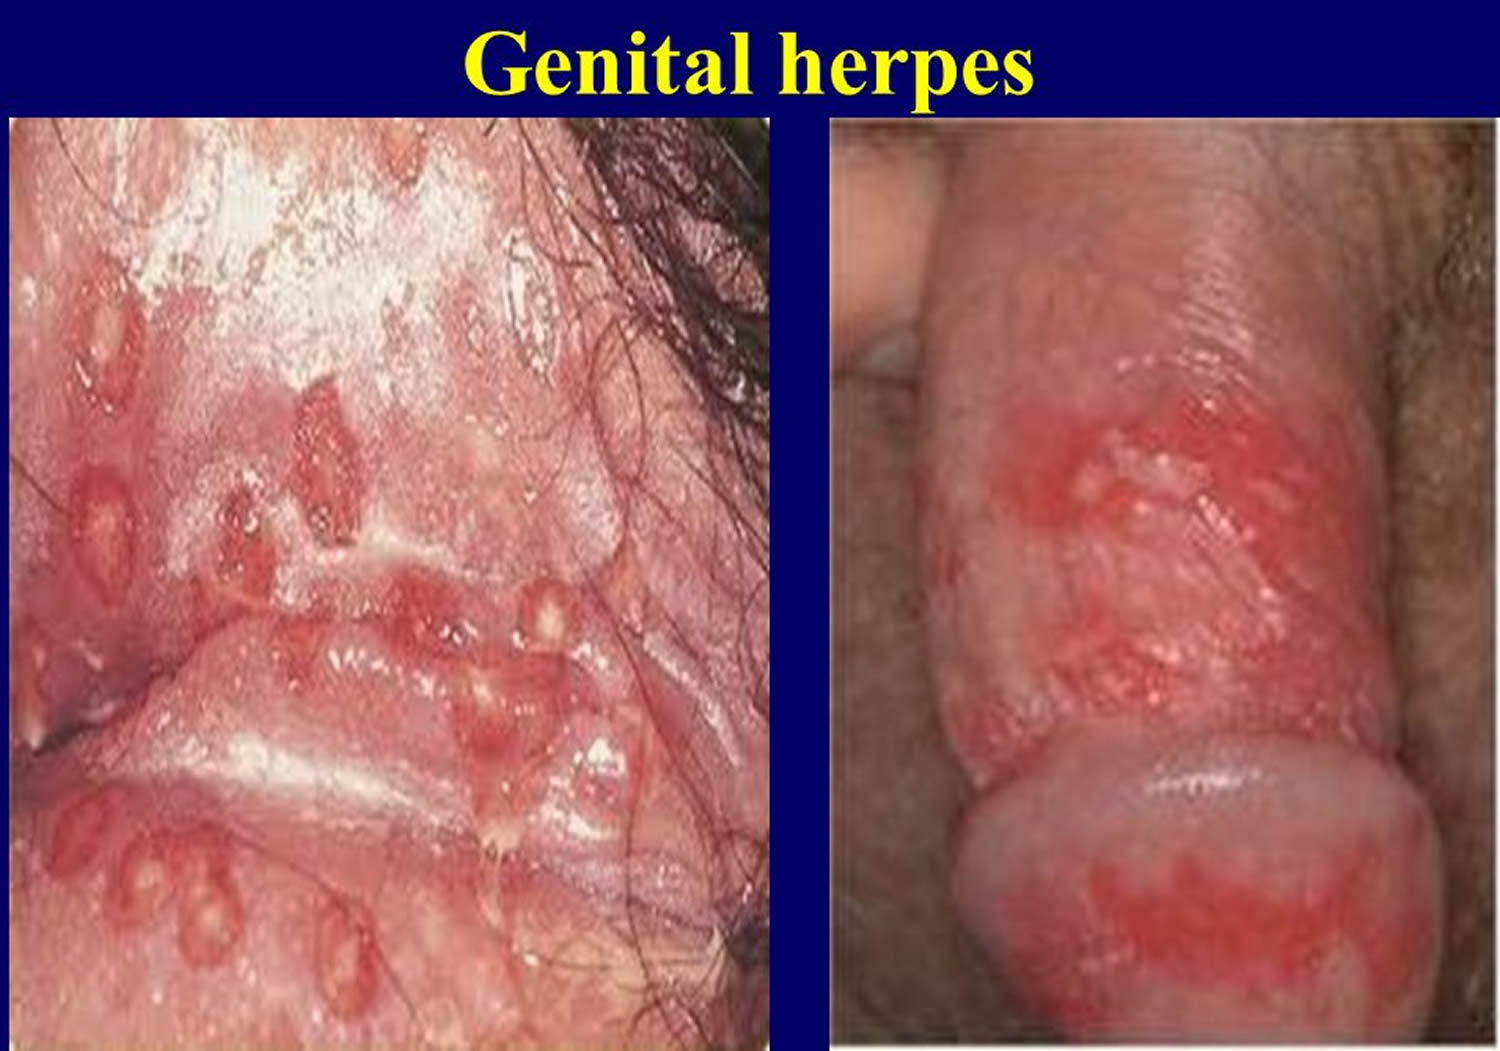 Sex with someone who has herpes